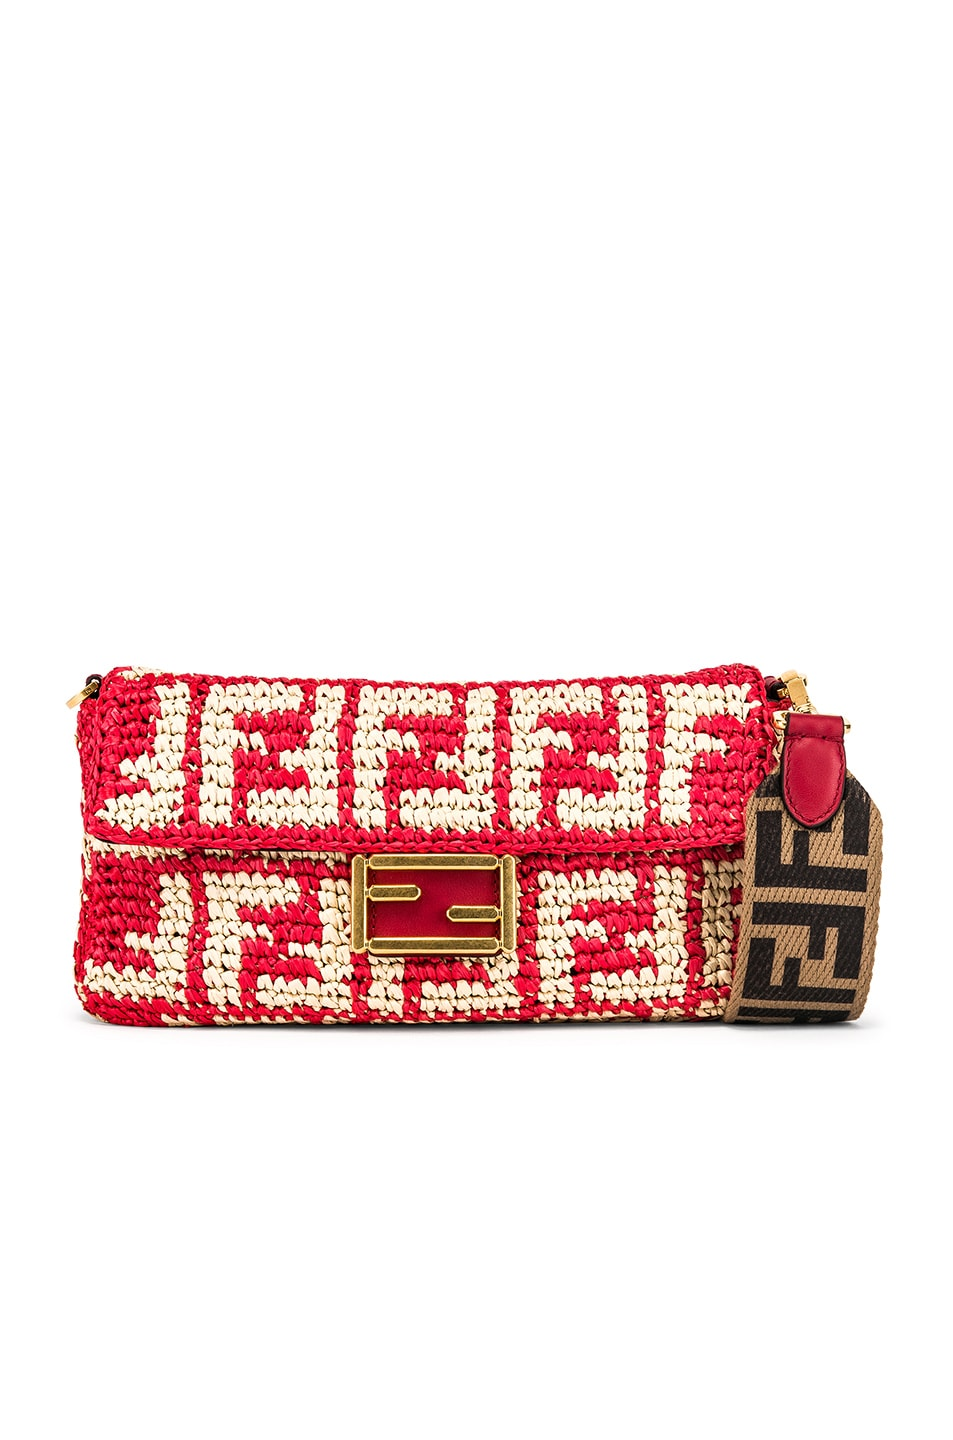 Image 1 of Fendi Baguette Double F Raffia Crossbody Bag in Red